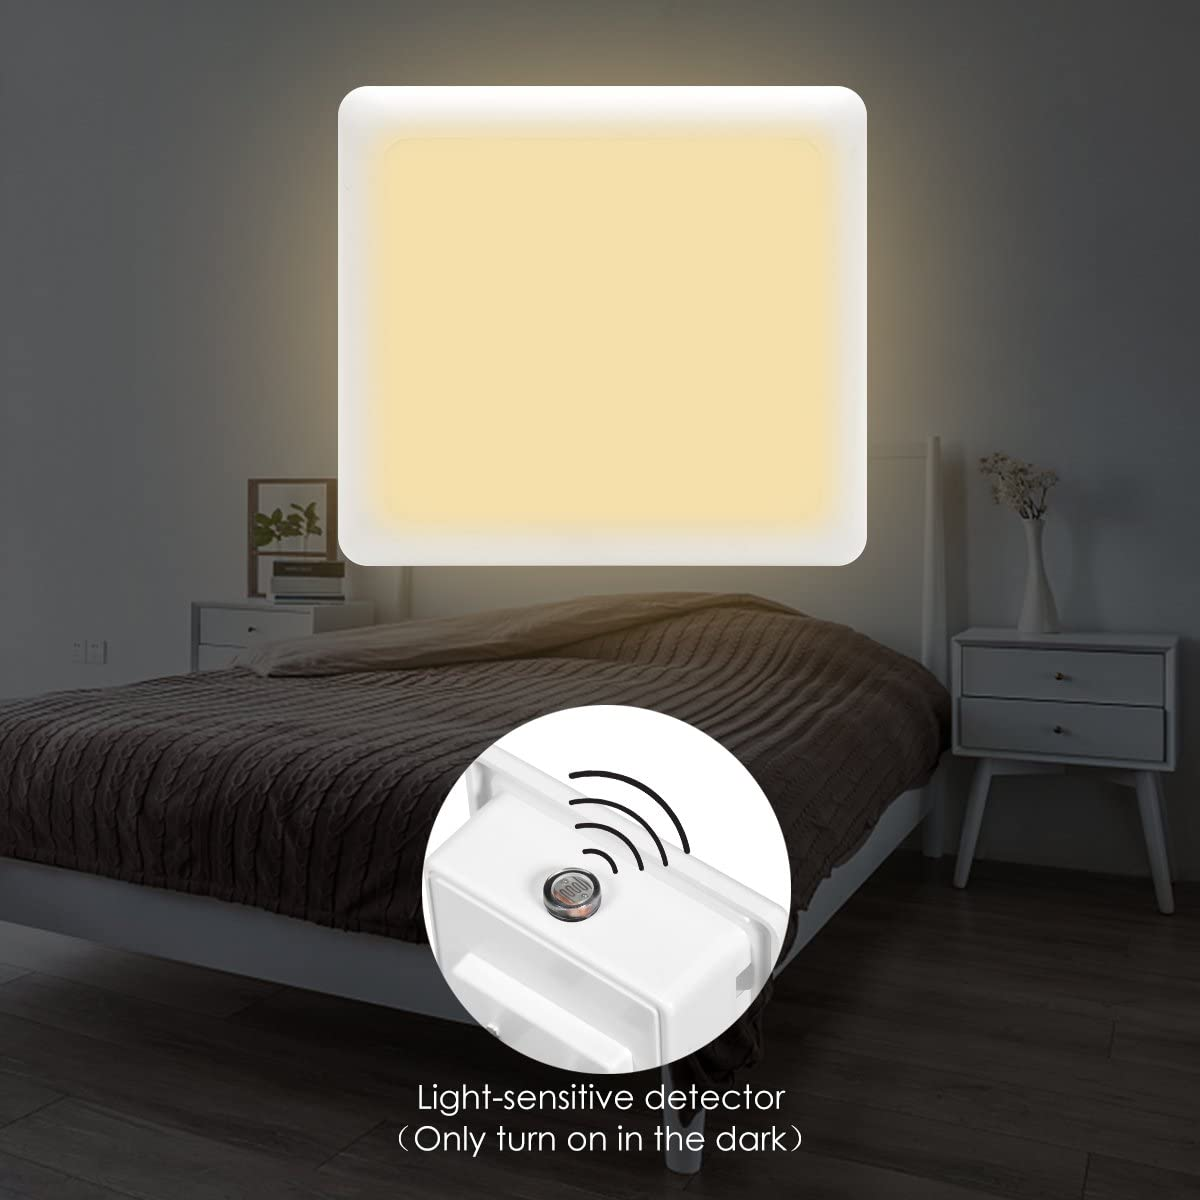 Dusk to Dawn Sensor Soft White Sensor Night Light Mini 3000K LED Nightlight for Bedroom LOHAS LED Night Light Plug in Kitchen Hallway 40 Lumen Kid Room Bathroom Stairs 6 Pack Nursery